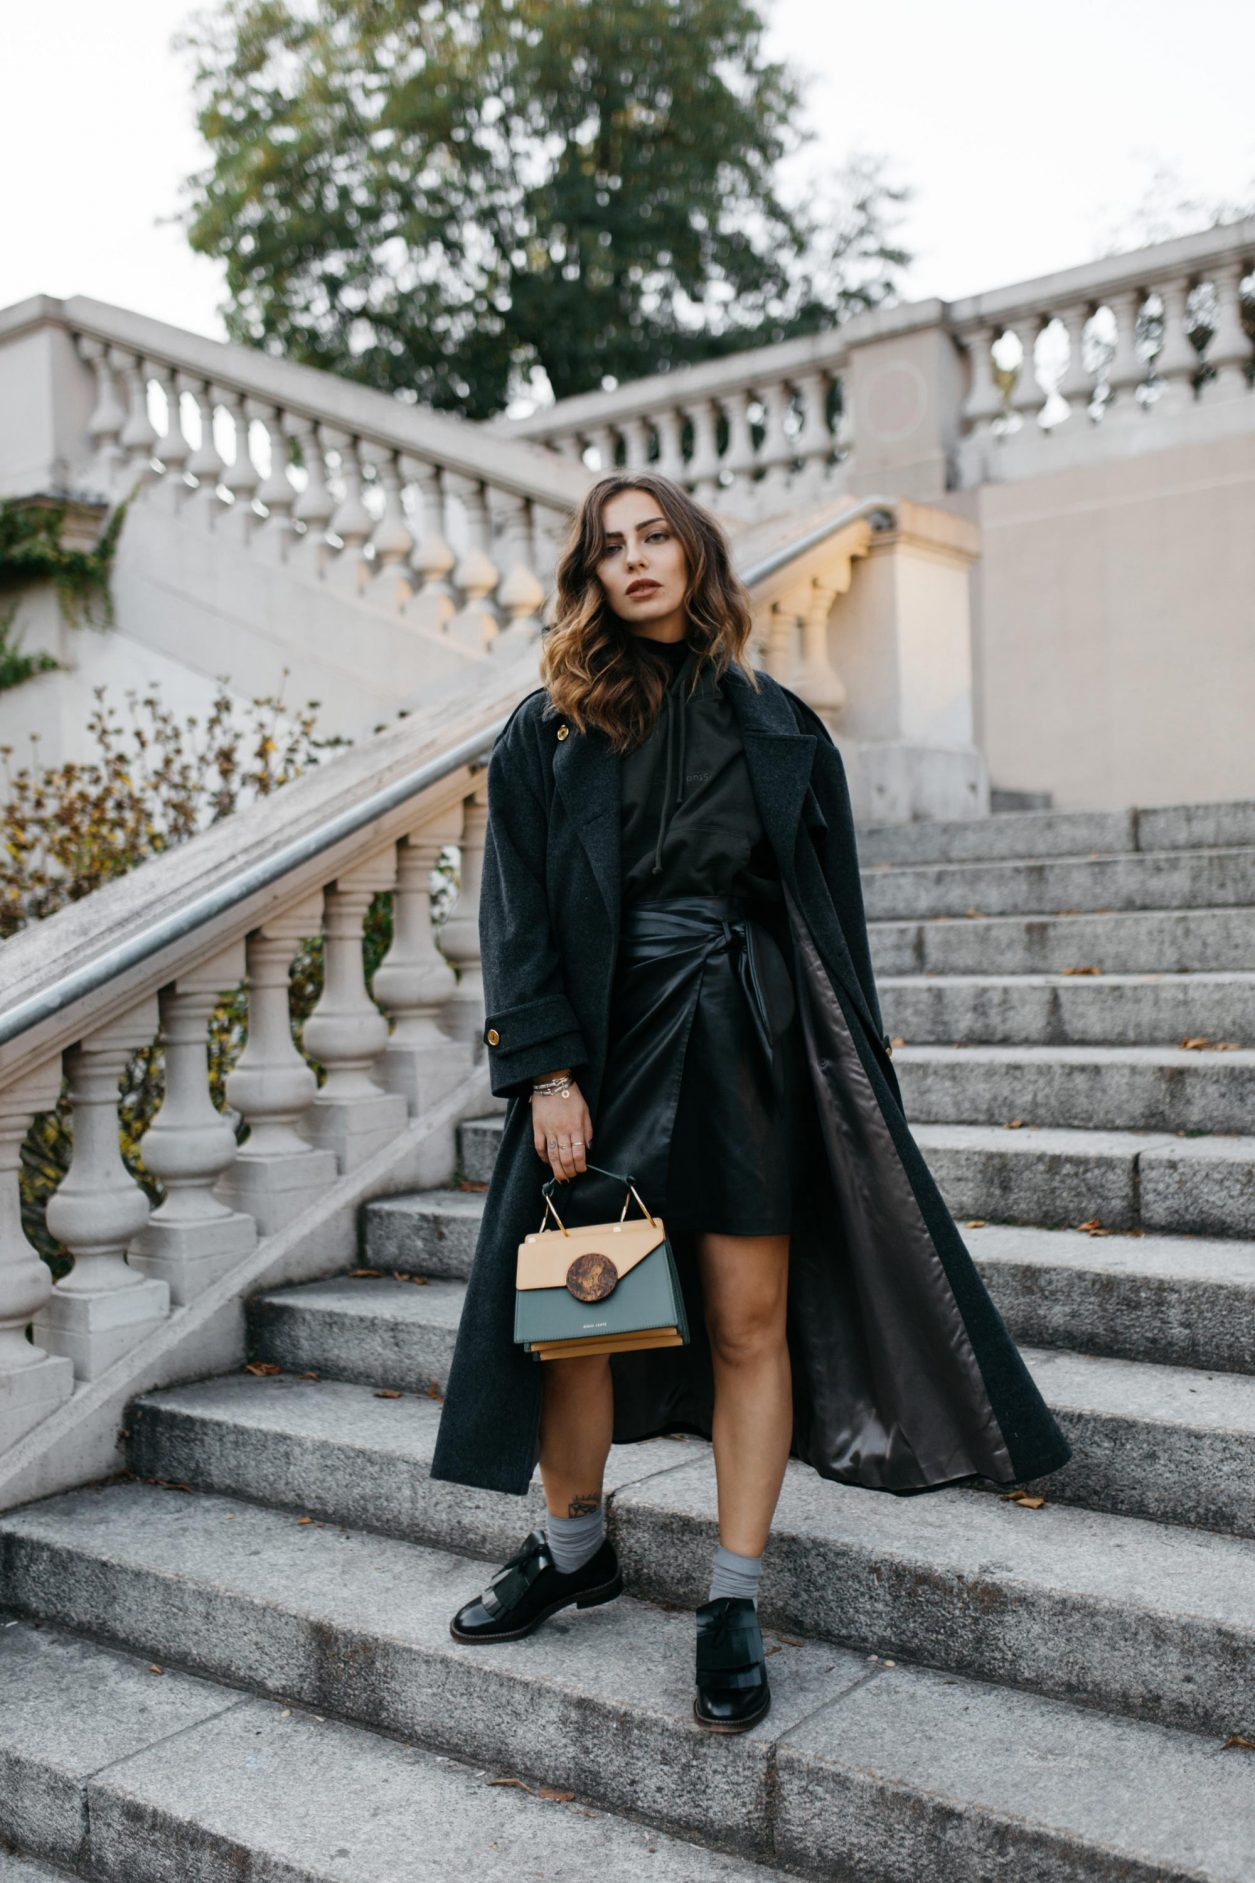 Streetstyle by Masha Sedgwick | All green fall outfit wearing Leather Skirt: Nanushka Hoody: Acne Studios Loafer: Marni Coat: Céline (vintage) Bag: Danse Lente Lipstick: Shiseido Nail polish: Nailberry